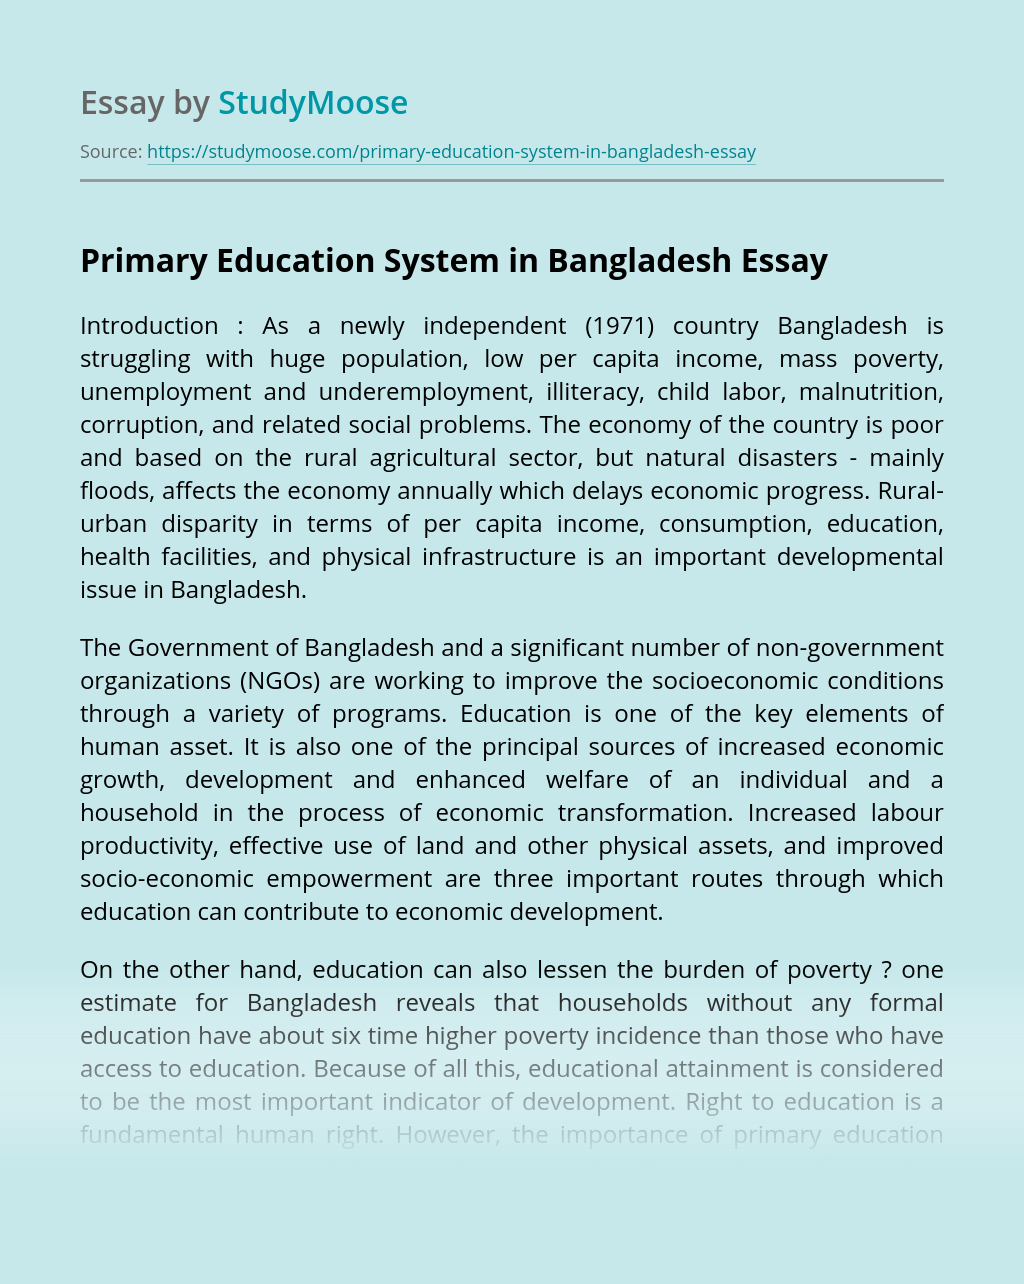 Primary Education System in Bangladesh